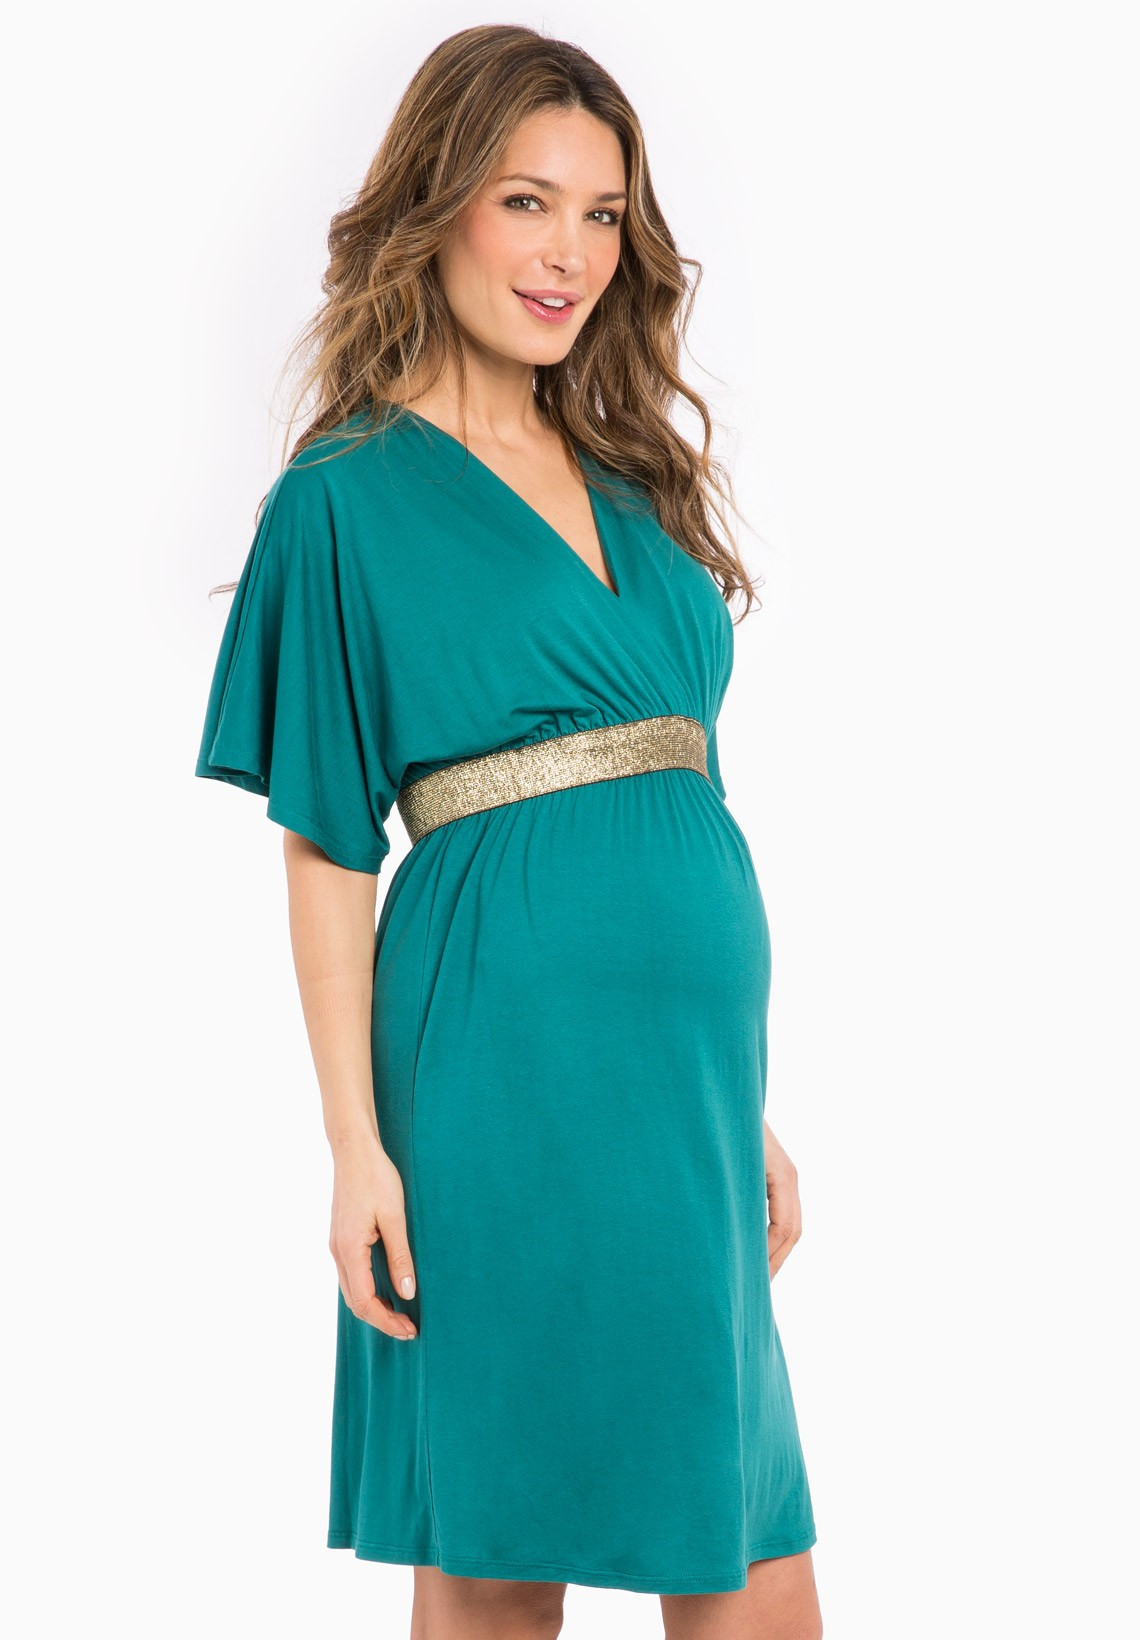 Maternity dress - FELICINEOR